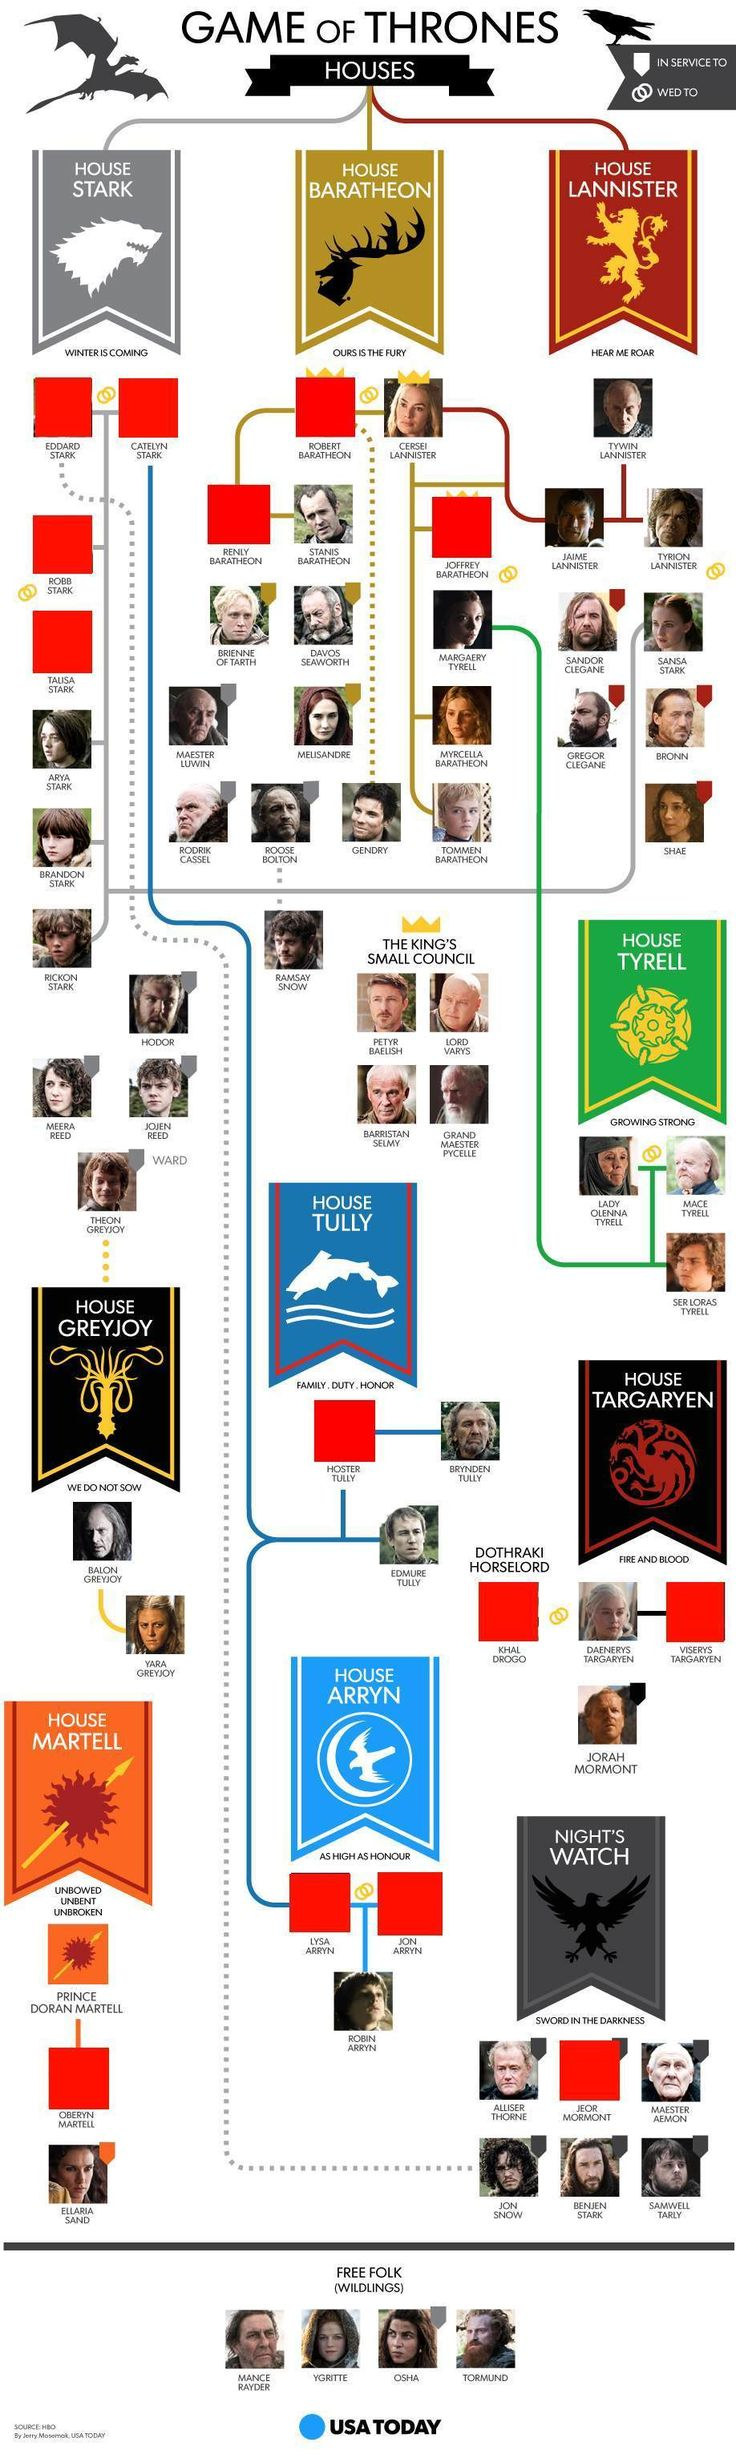 Game of Thrones characters family tree s4e8 who's still alive infographic meme Imgur